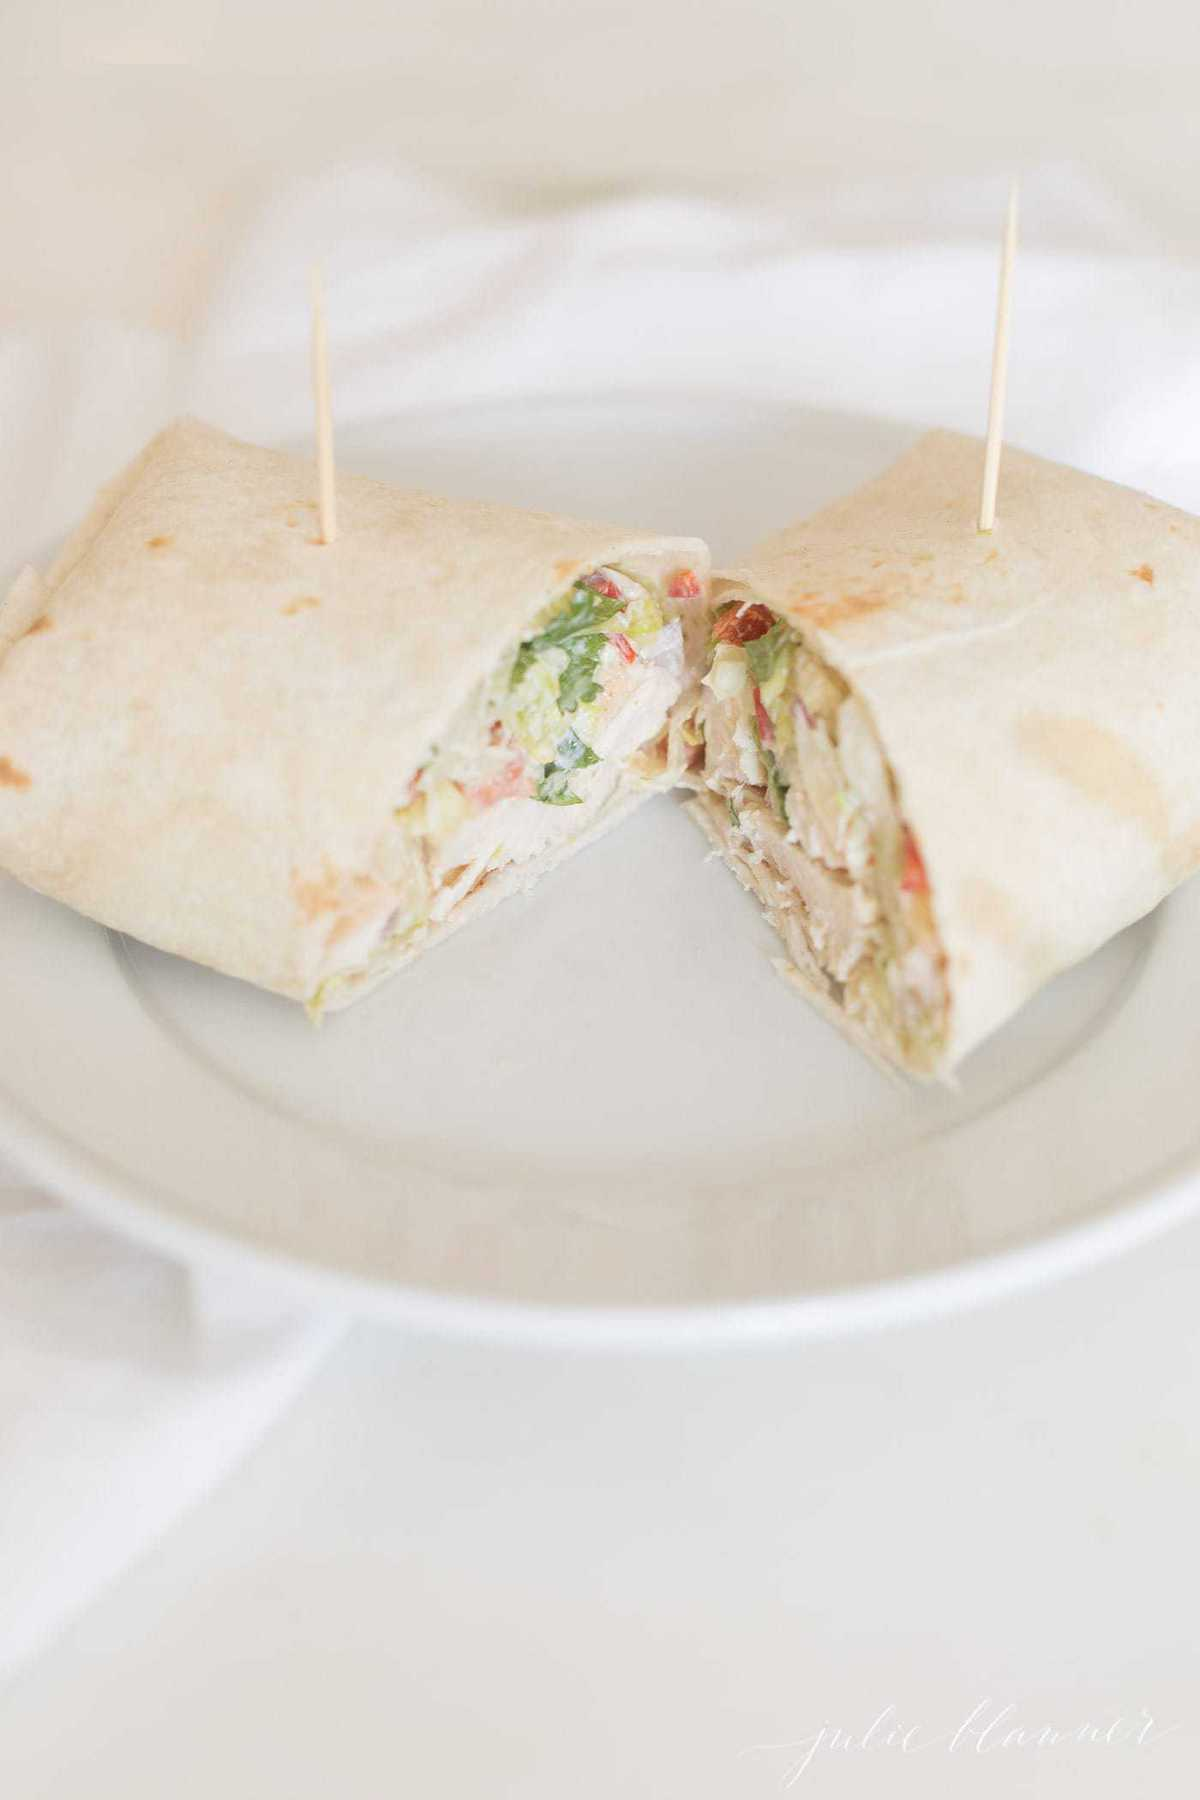 White plate with a chicken tortilla wrap split in two.